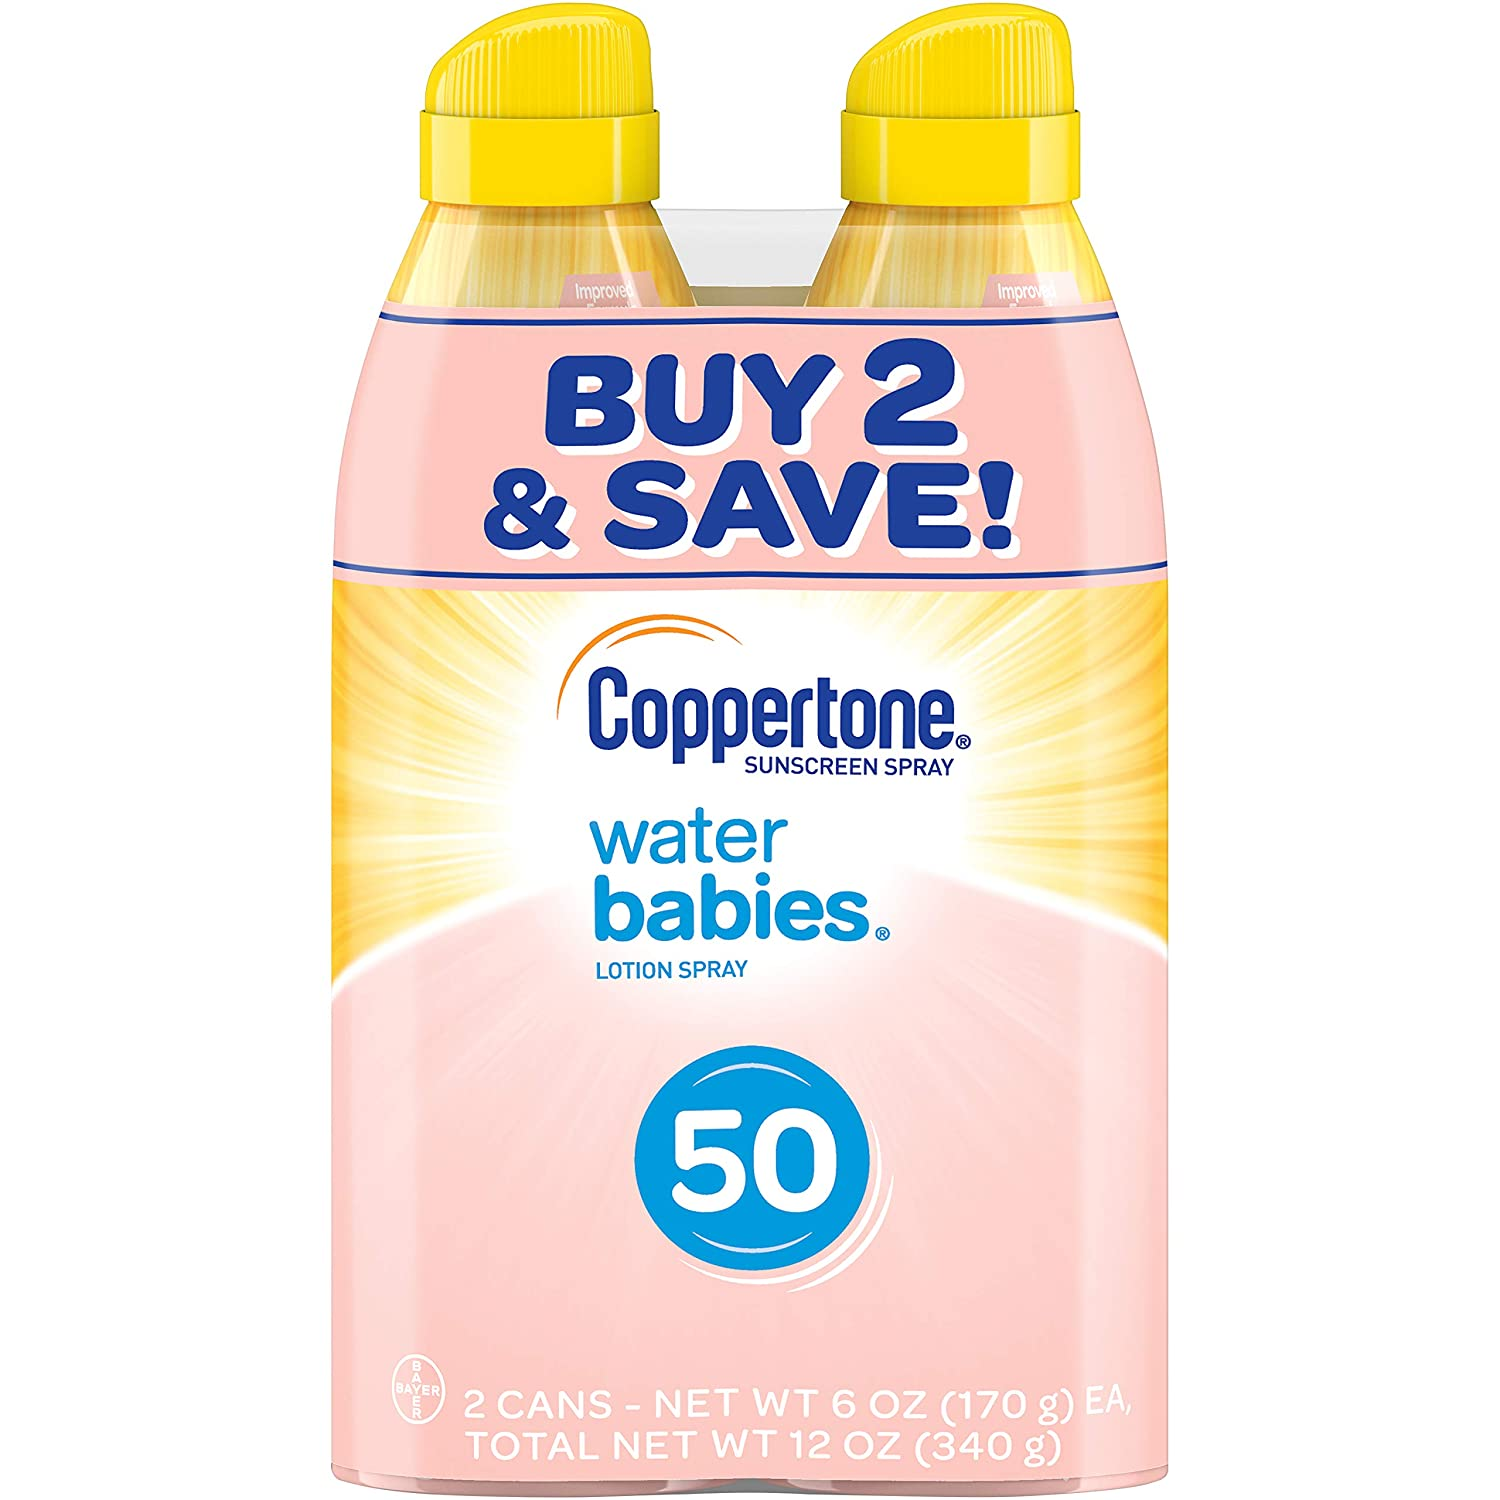 Coppertone WaterBabies Sunscreen Quick Cover Lotion Spray Broad Spectrum SPF 50 (6 Ounce per Bottle, Pack of 2) (Packaging may vary)